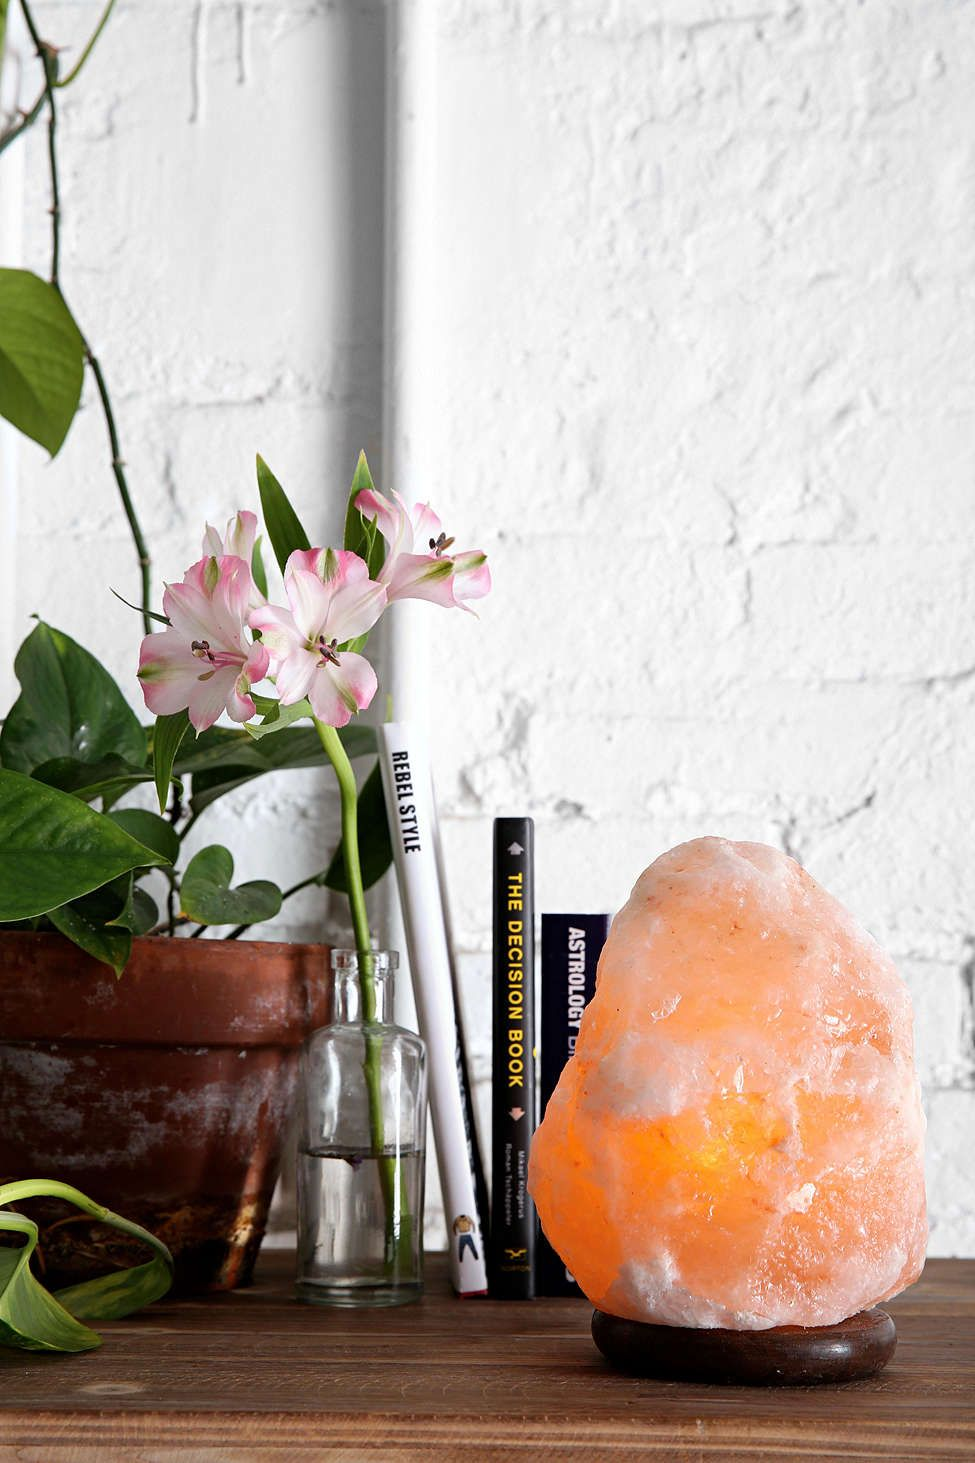 Himalayan salt lamp. It helps purify the air and helps people with allergies and asthma. I have one in the bedroom.